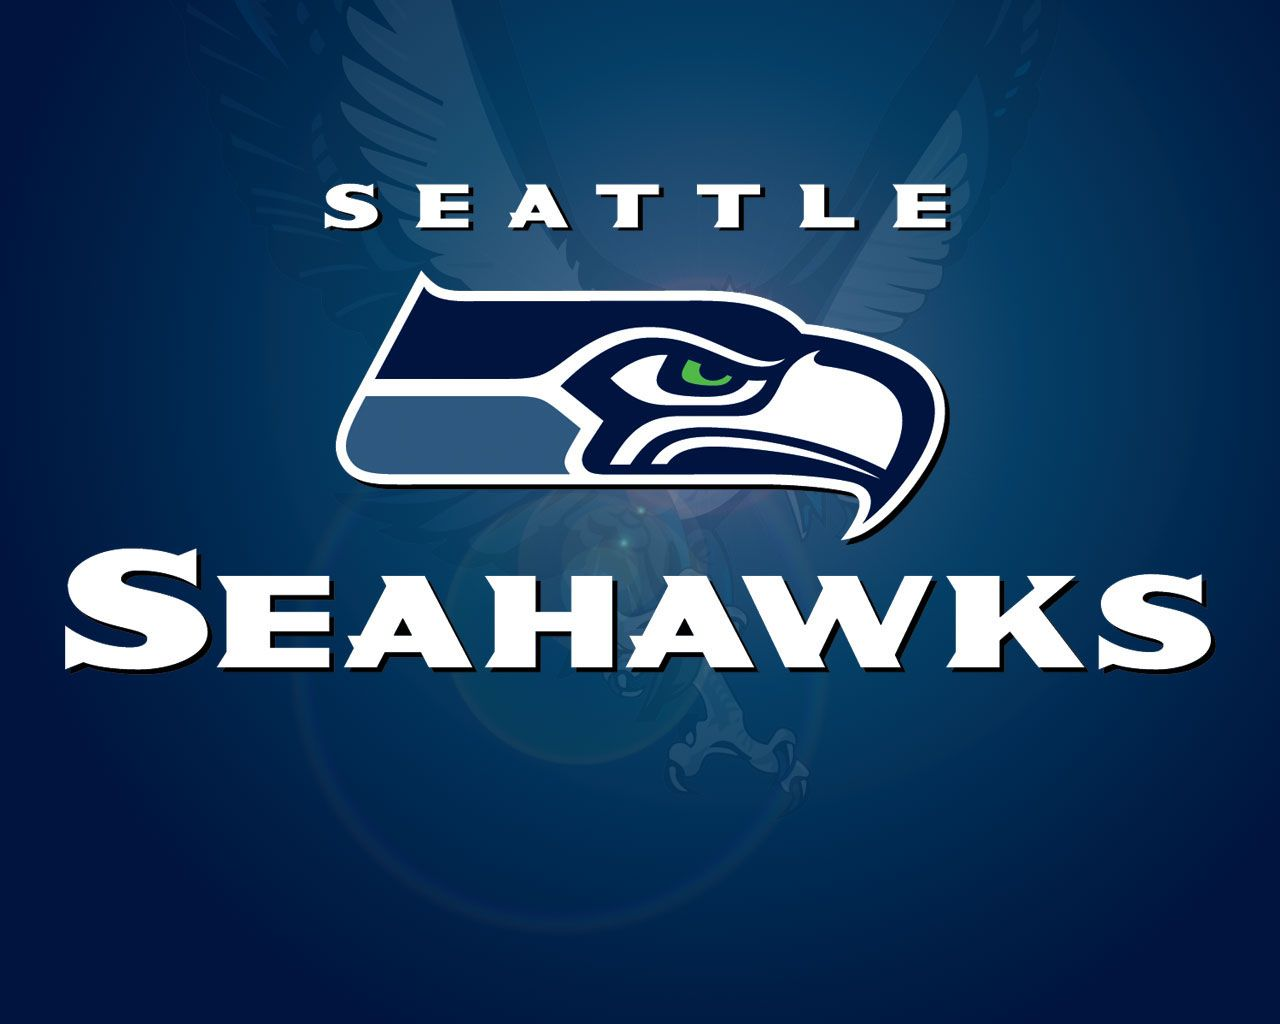 seahawks - photo #1